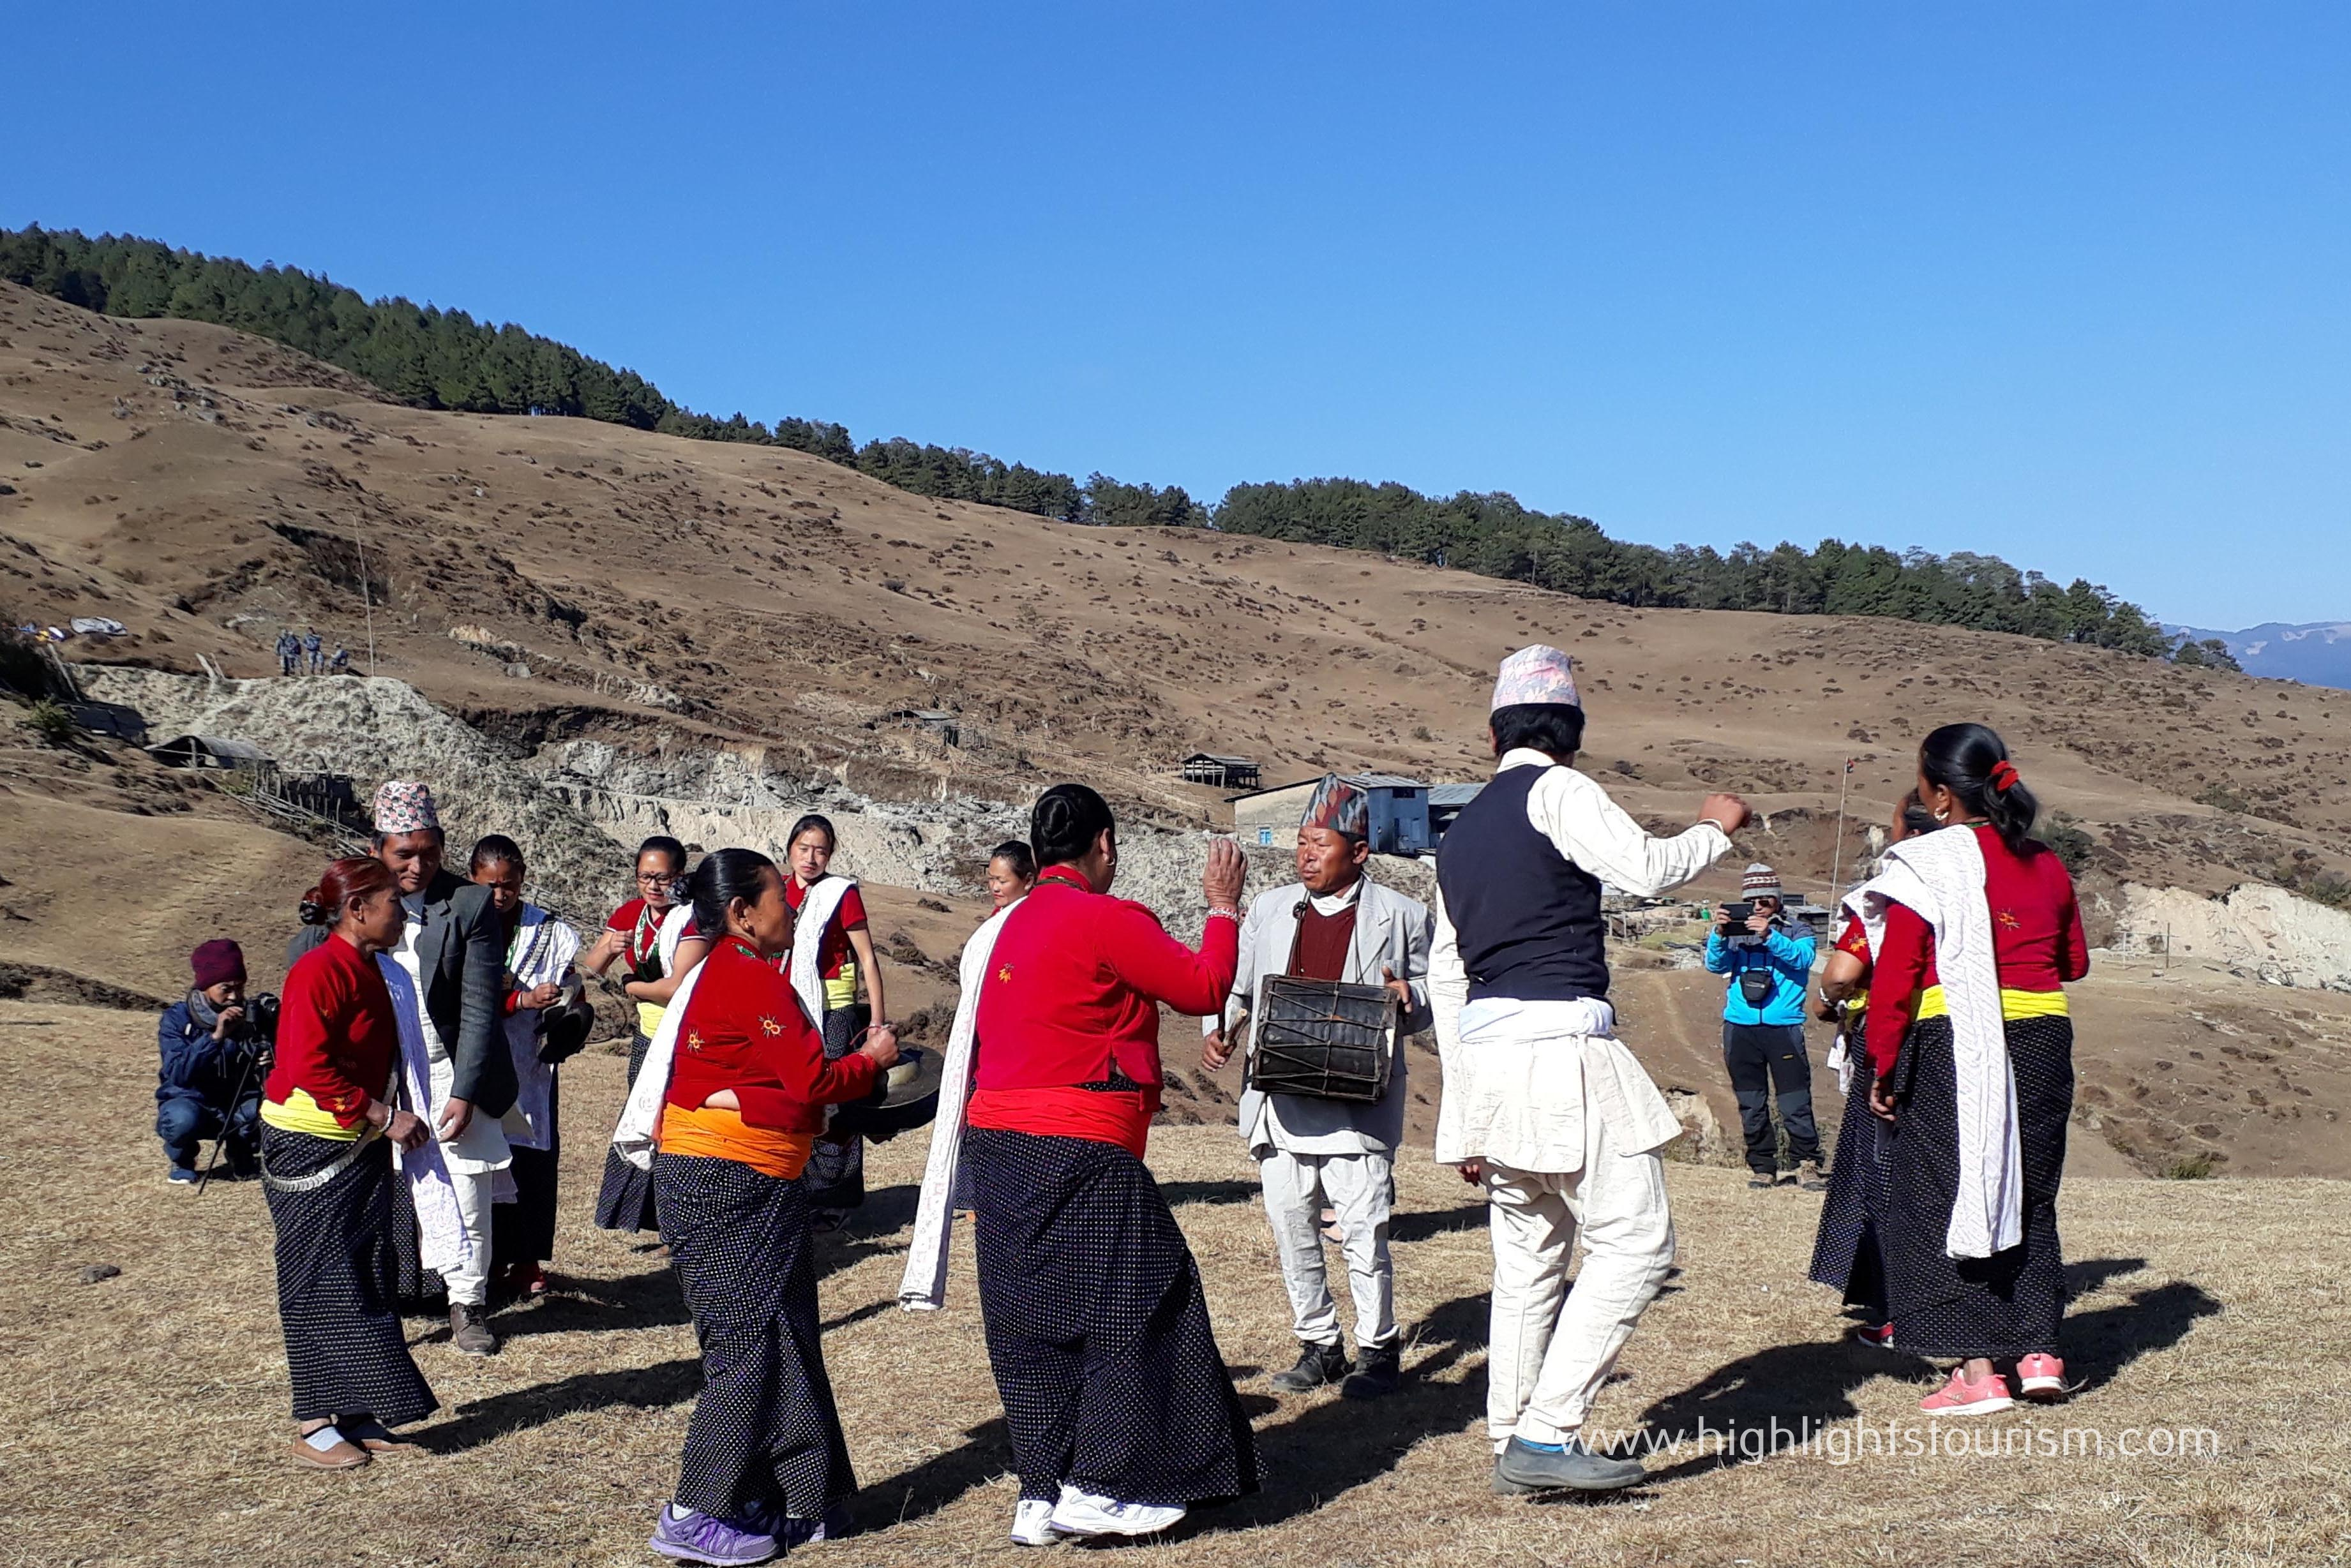 A trail, combination of Kirati myth, culture and nature